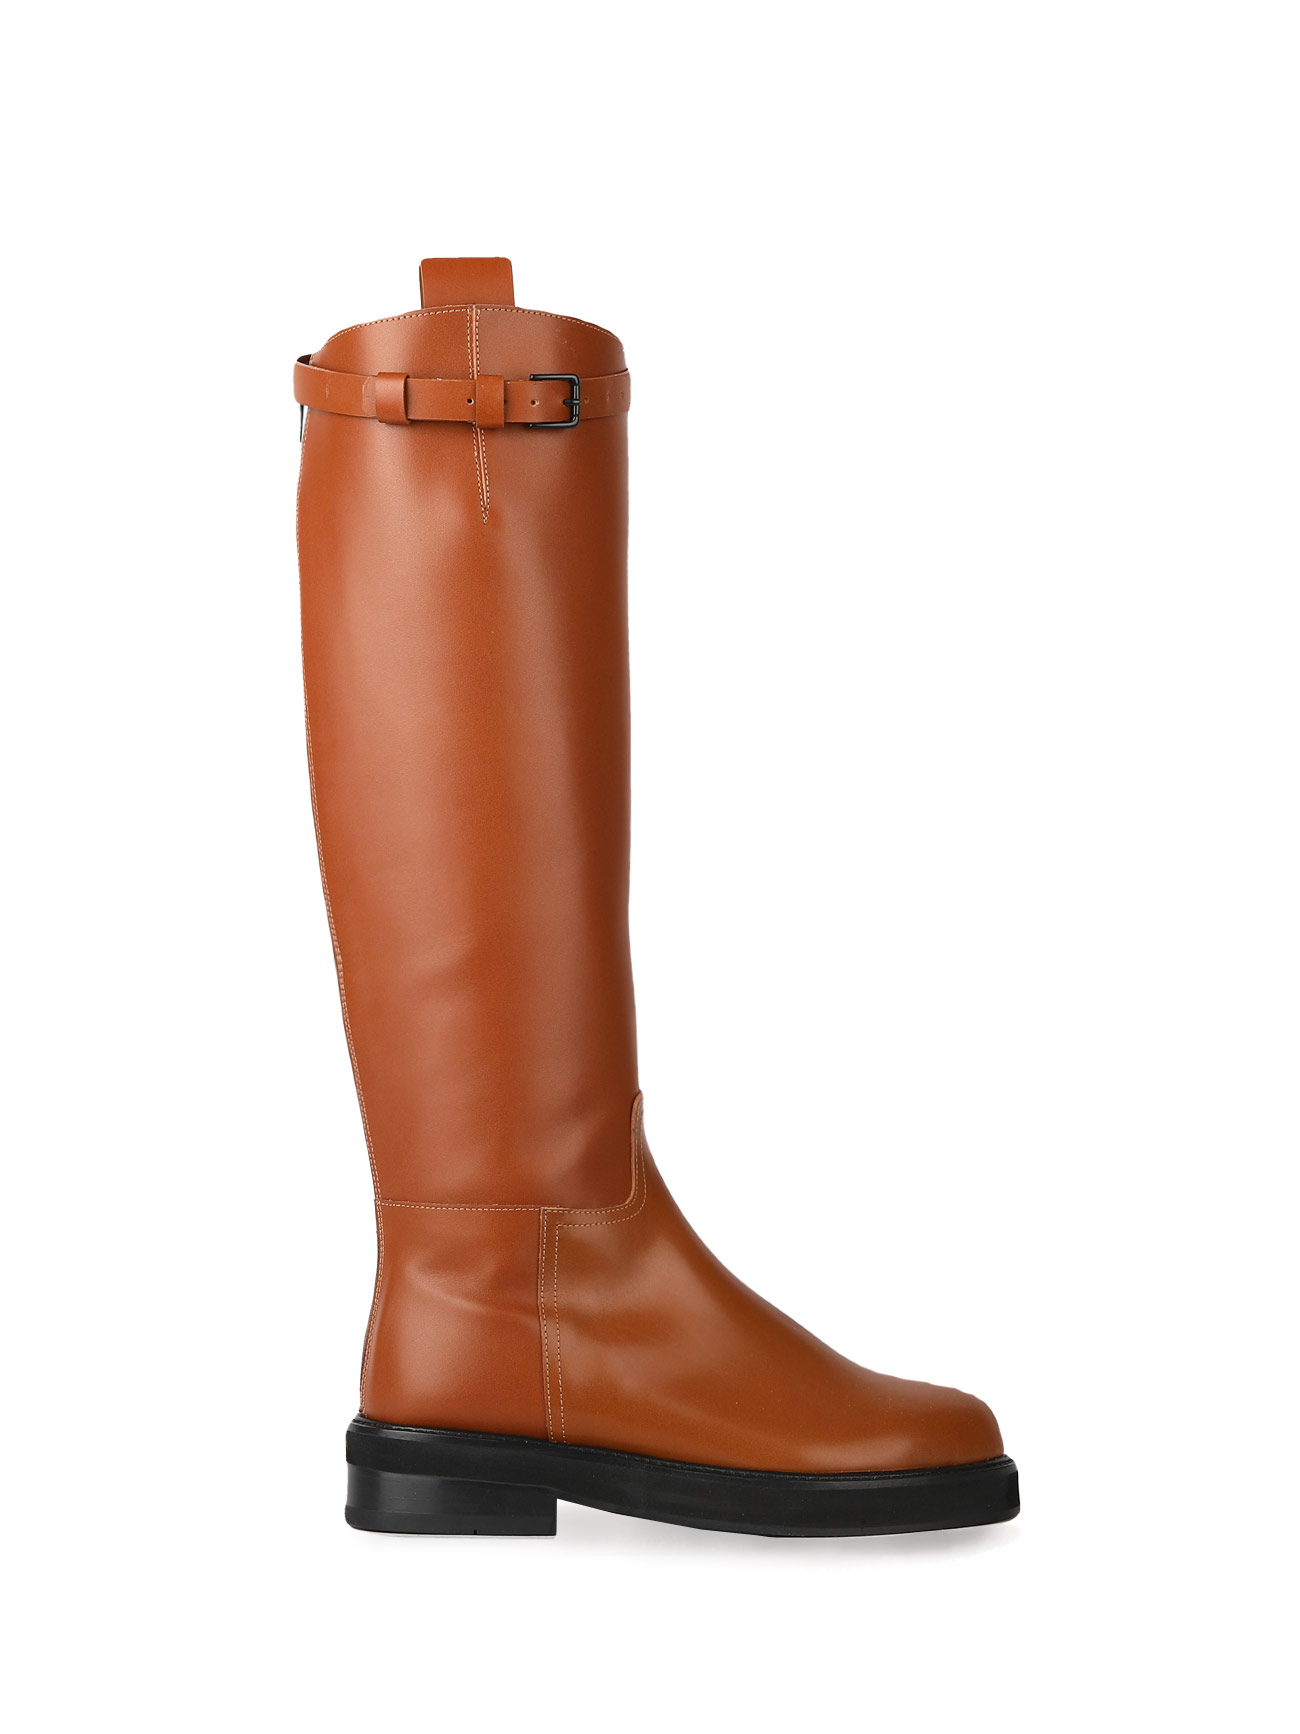 JOY BUCKLE-STRAP LEATHER BOOTS - CAMEL (4cm)